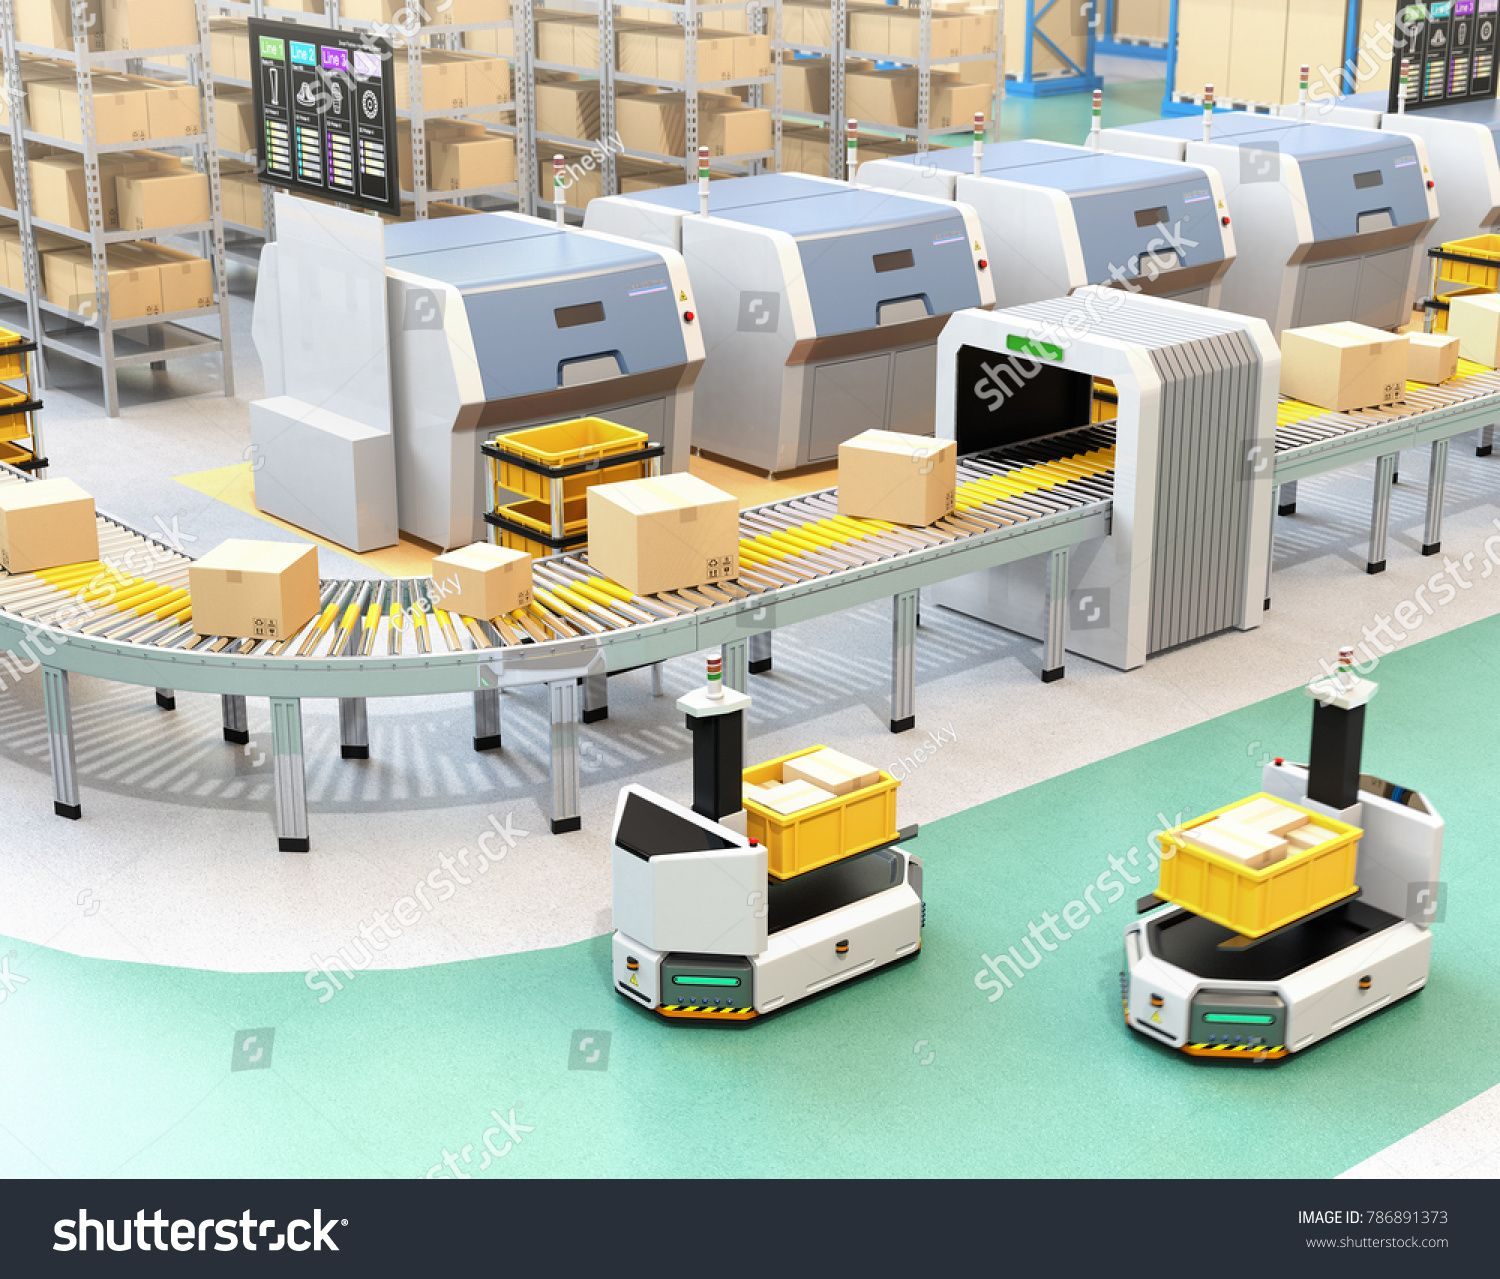 Self driving AGV (Automatic guided vehicle) with forklift